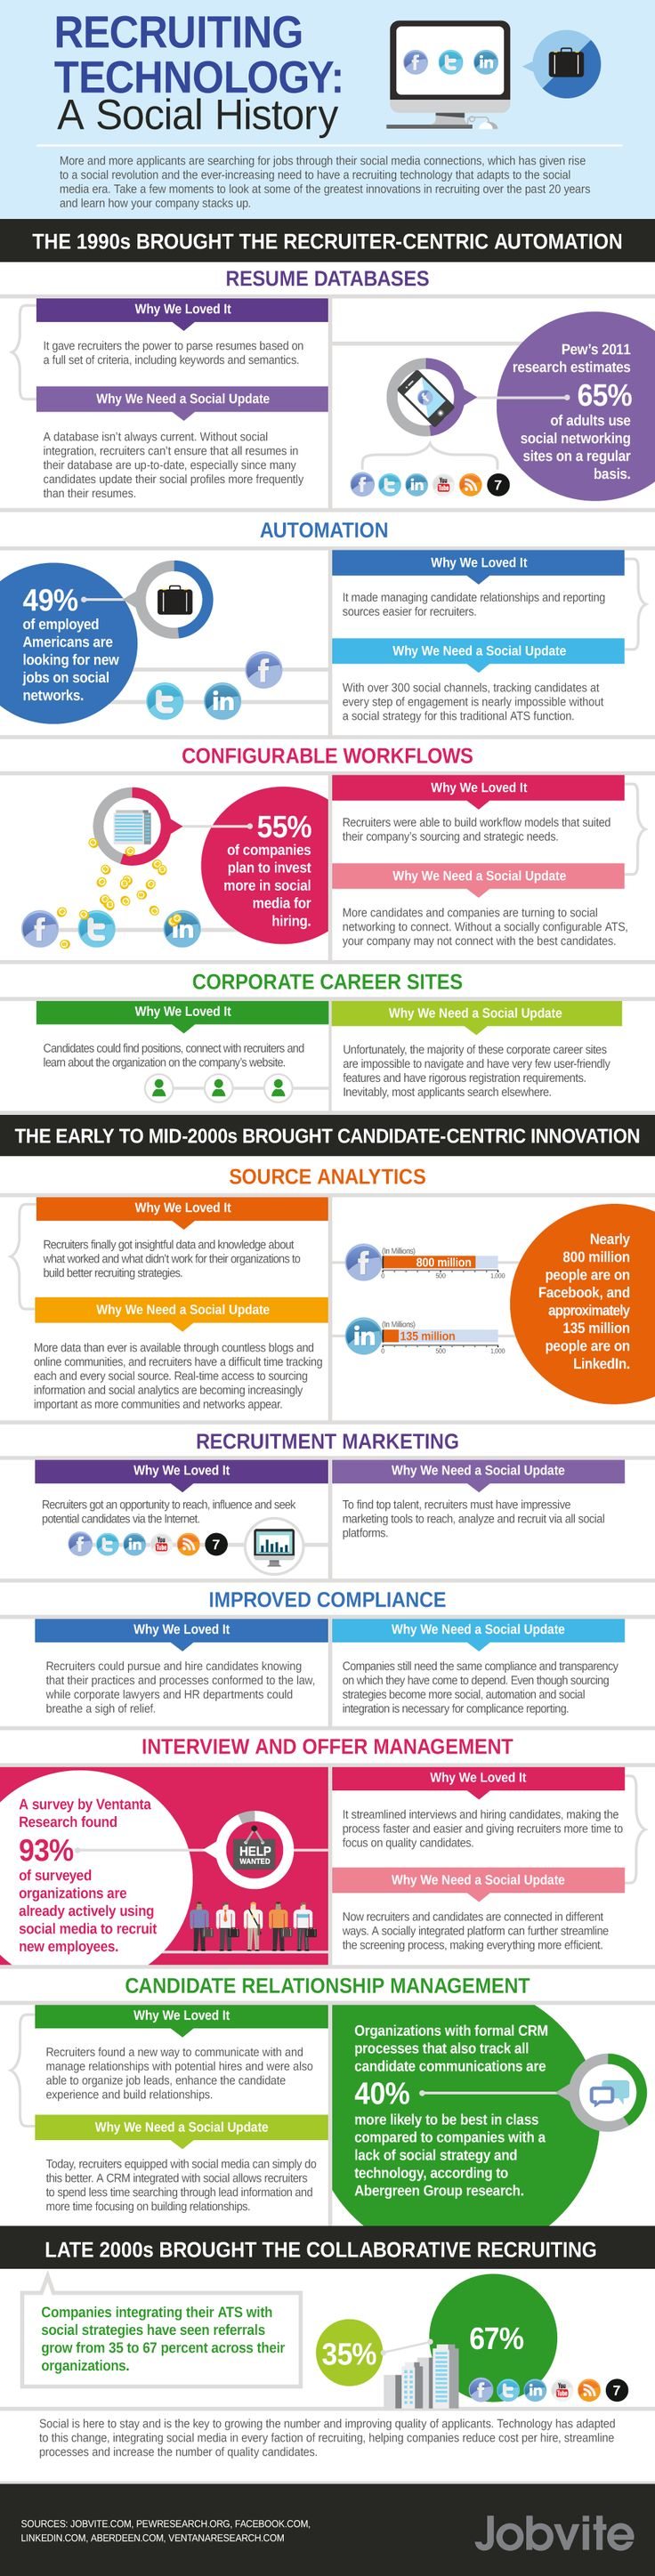 The History of Social Recruiting TechnologySocial Recruitment, Job Search, Social History, Social Media, Recruitment Stuff, Social Networks, Infographic, Socialmedia, Recruitment Technology